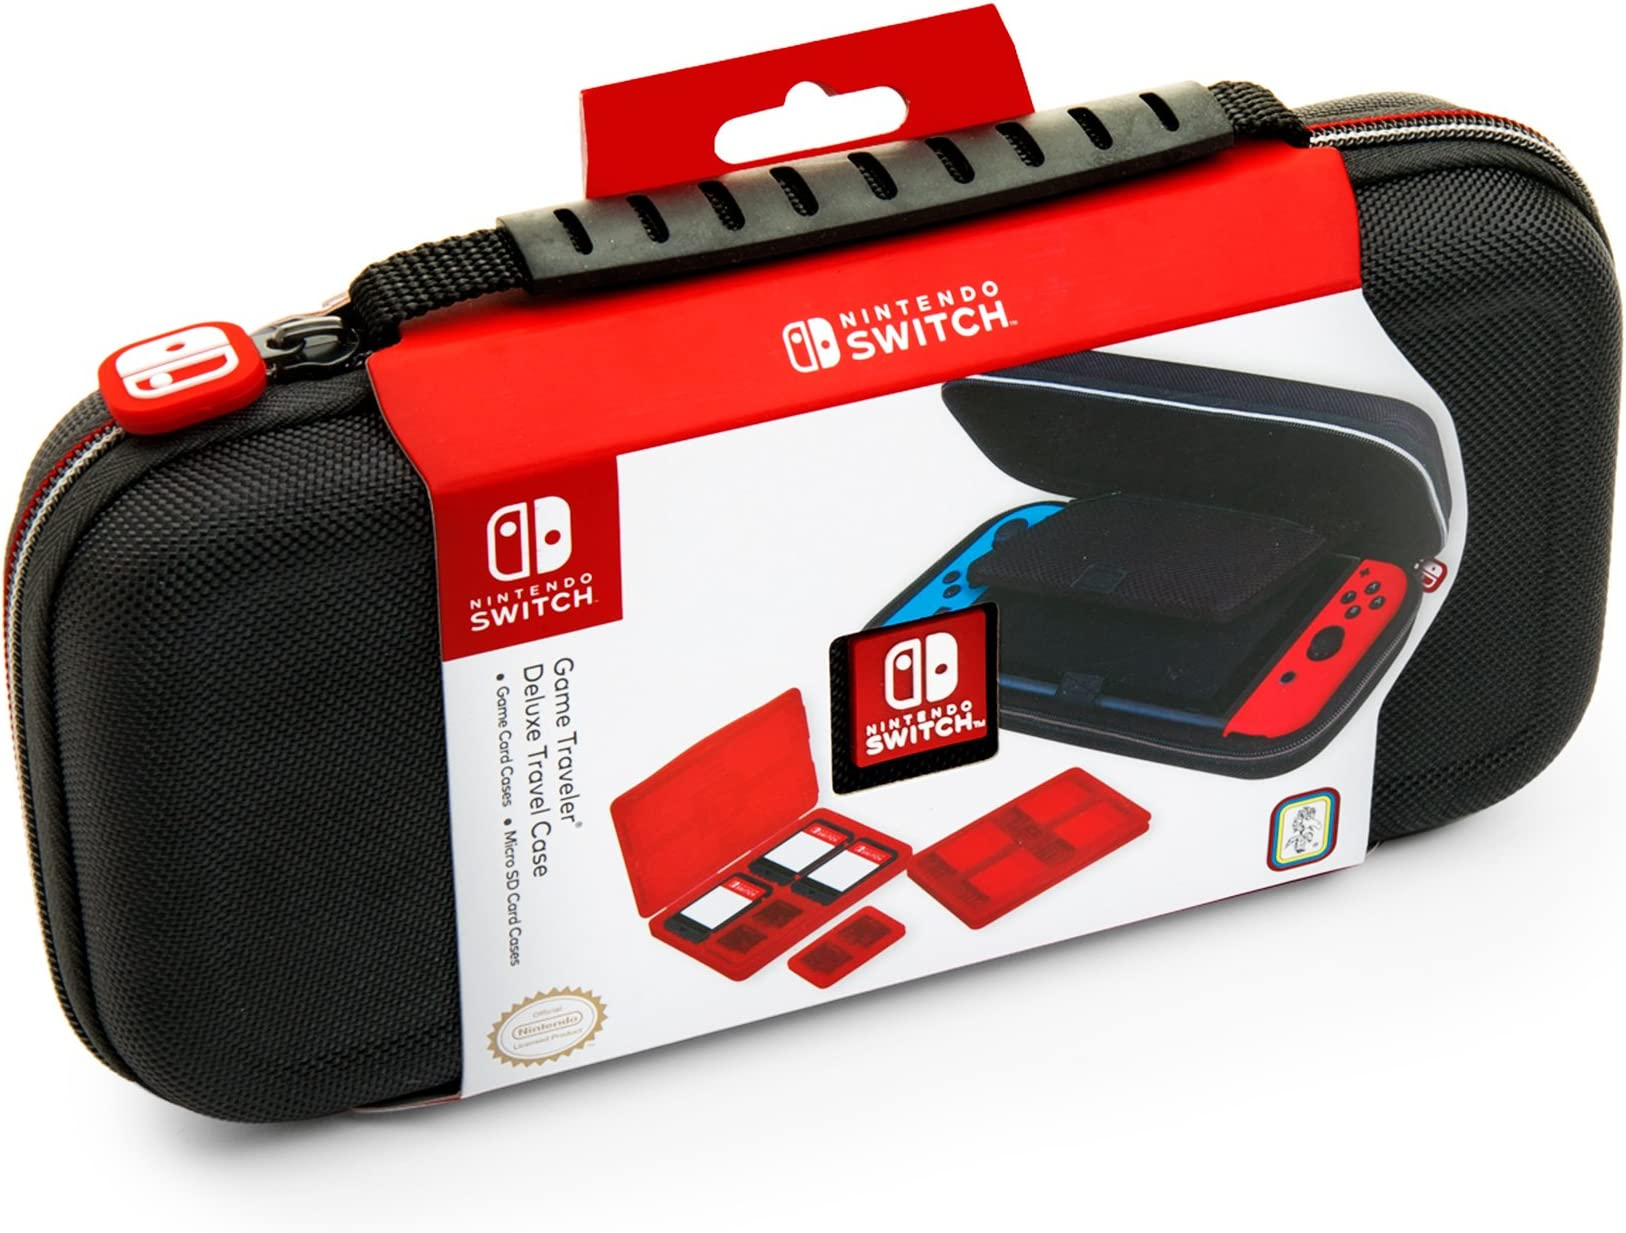 Nintendo Switch Deluxe Travel Case   Premium Hard Case Made With Ballistic Nylon, Secure Tight Fit For Your Switch And Games. Designed To Protect Switch's Analog Sticks. Bonus: Two Multi Game Cases by Rds Industries, Inc